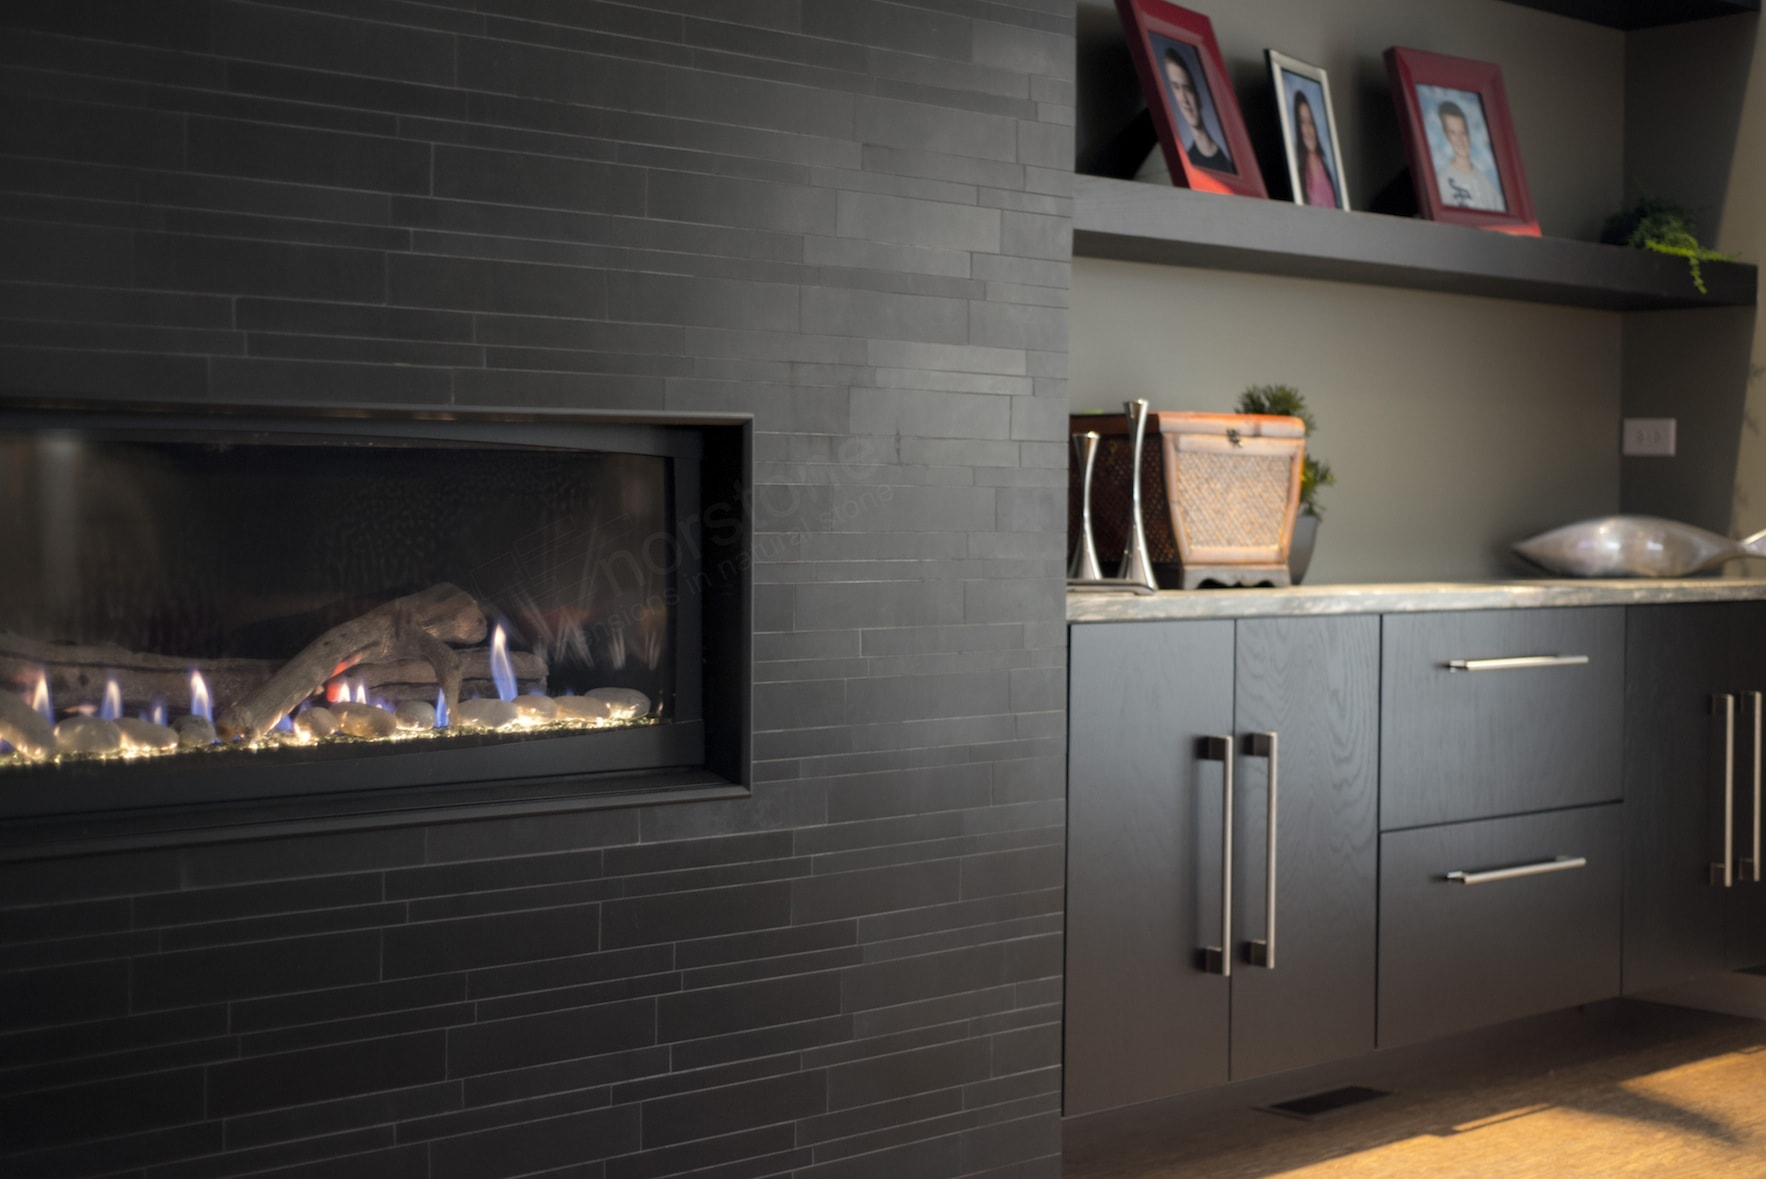 Modern All Glass Fireplace Insert set at waist level on a black stone tile fireplace